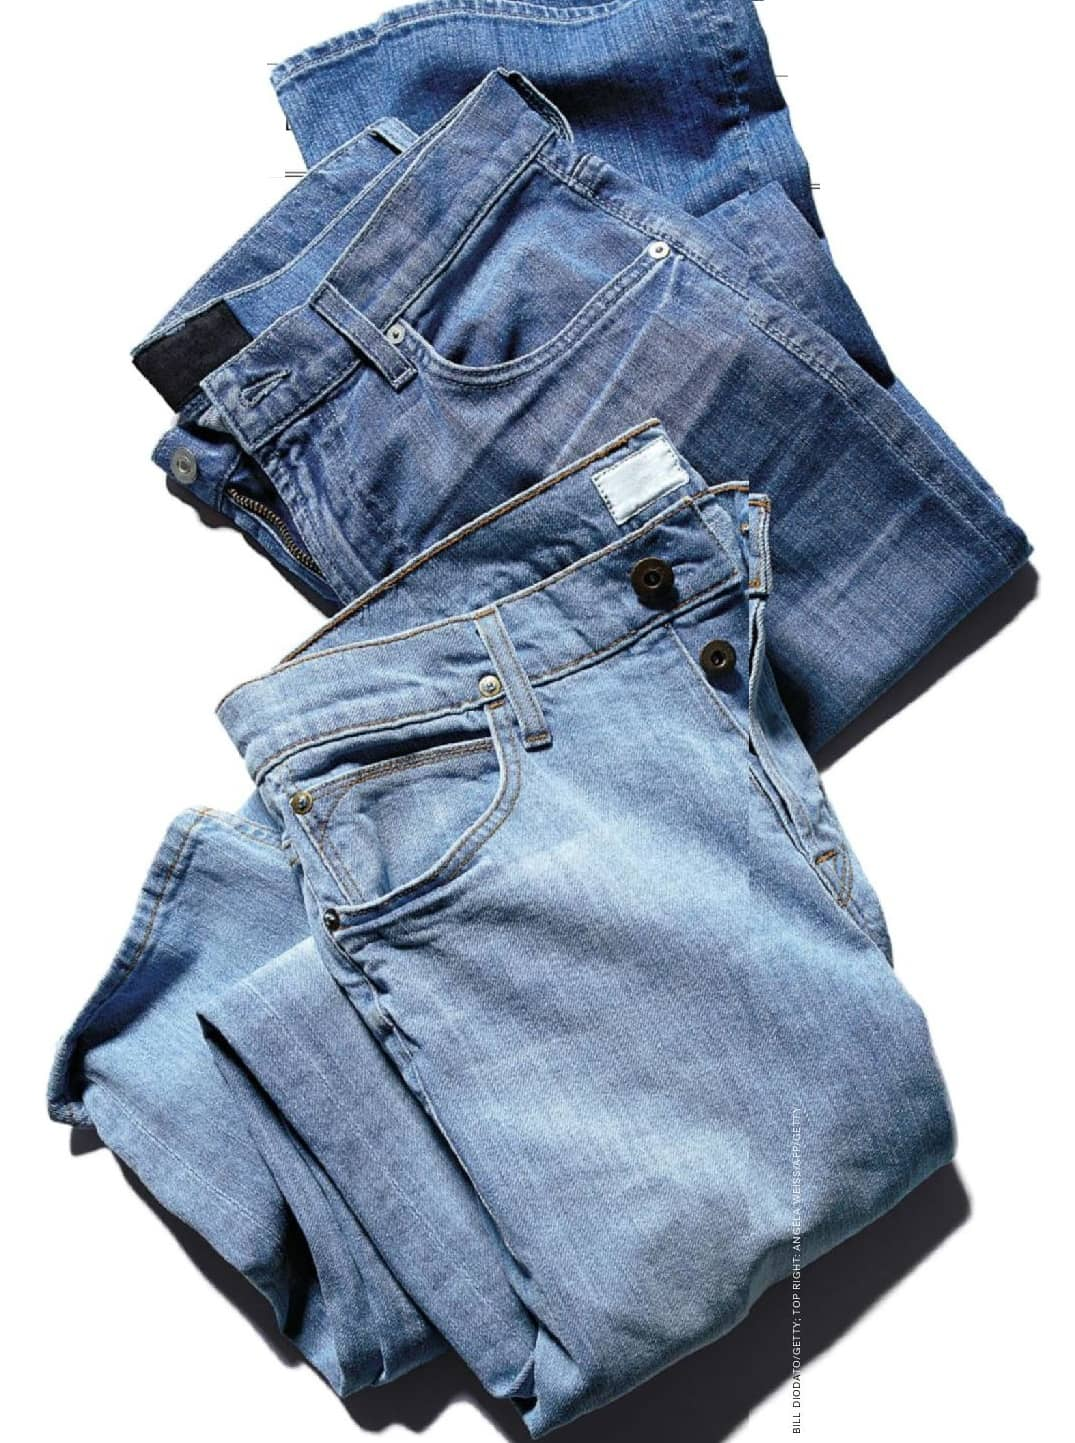 The Real Cost Of Your Blue Jeans